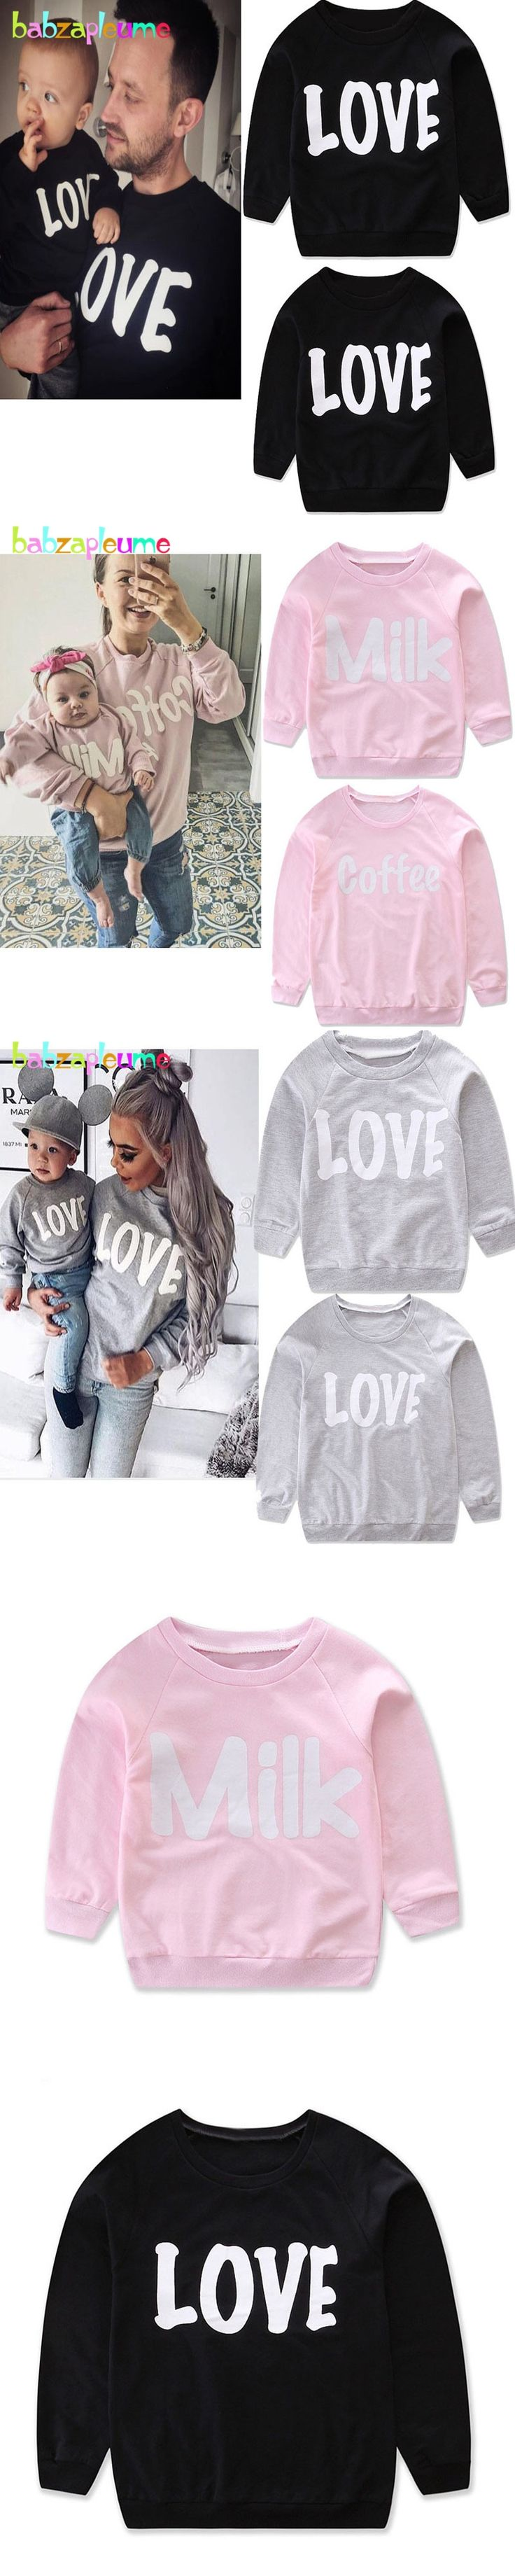 Spring Autumn Family Costume Matching Mother Daughter Clothes Fashion Baby Girls Clothing Pink T-shirt Father Son Outfits BC1133